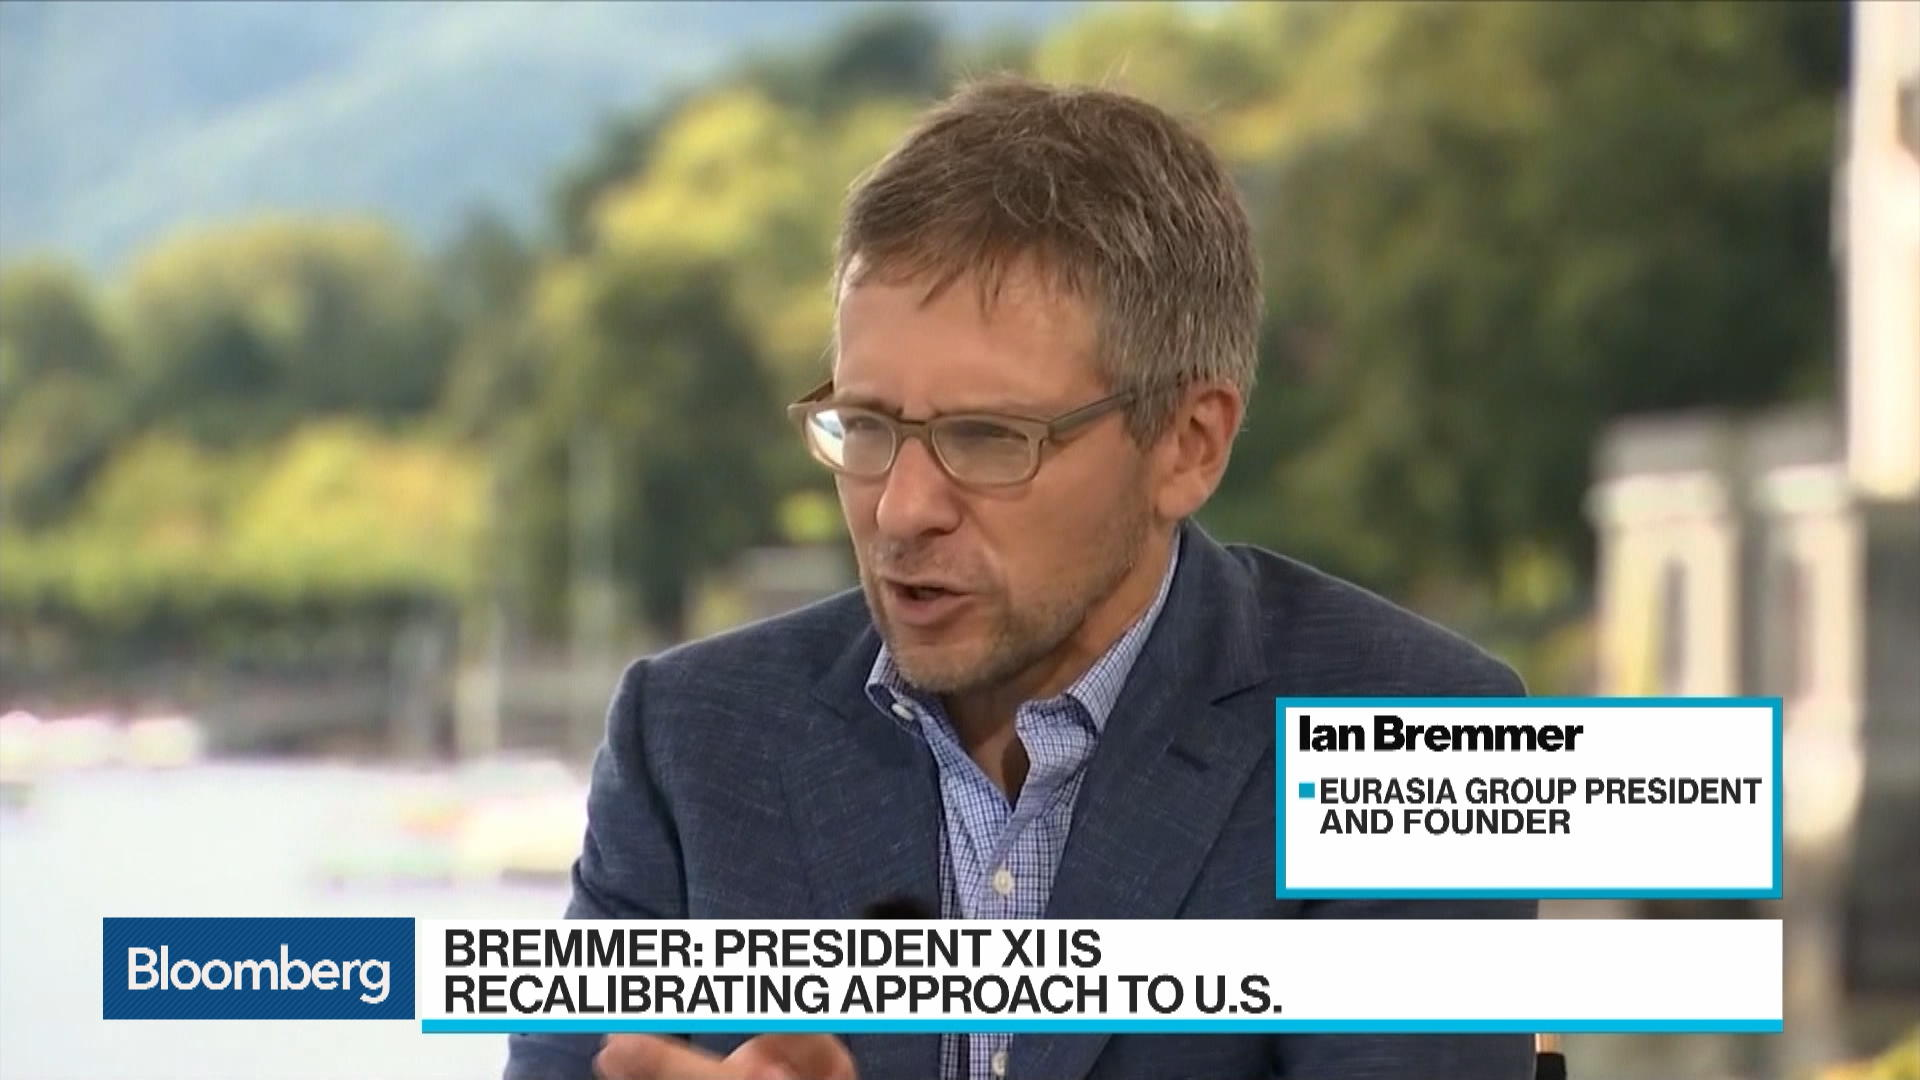 Xi Is `Recalibrating' China's U.S. Approach, Bremmer Says